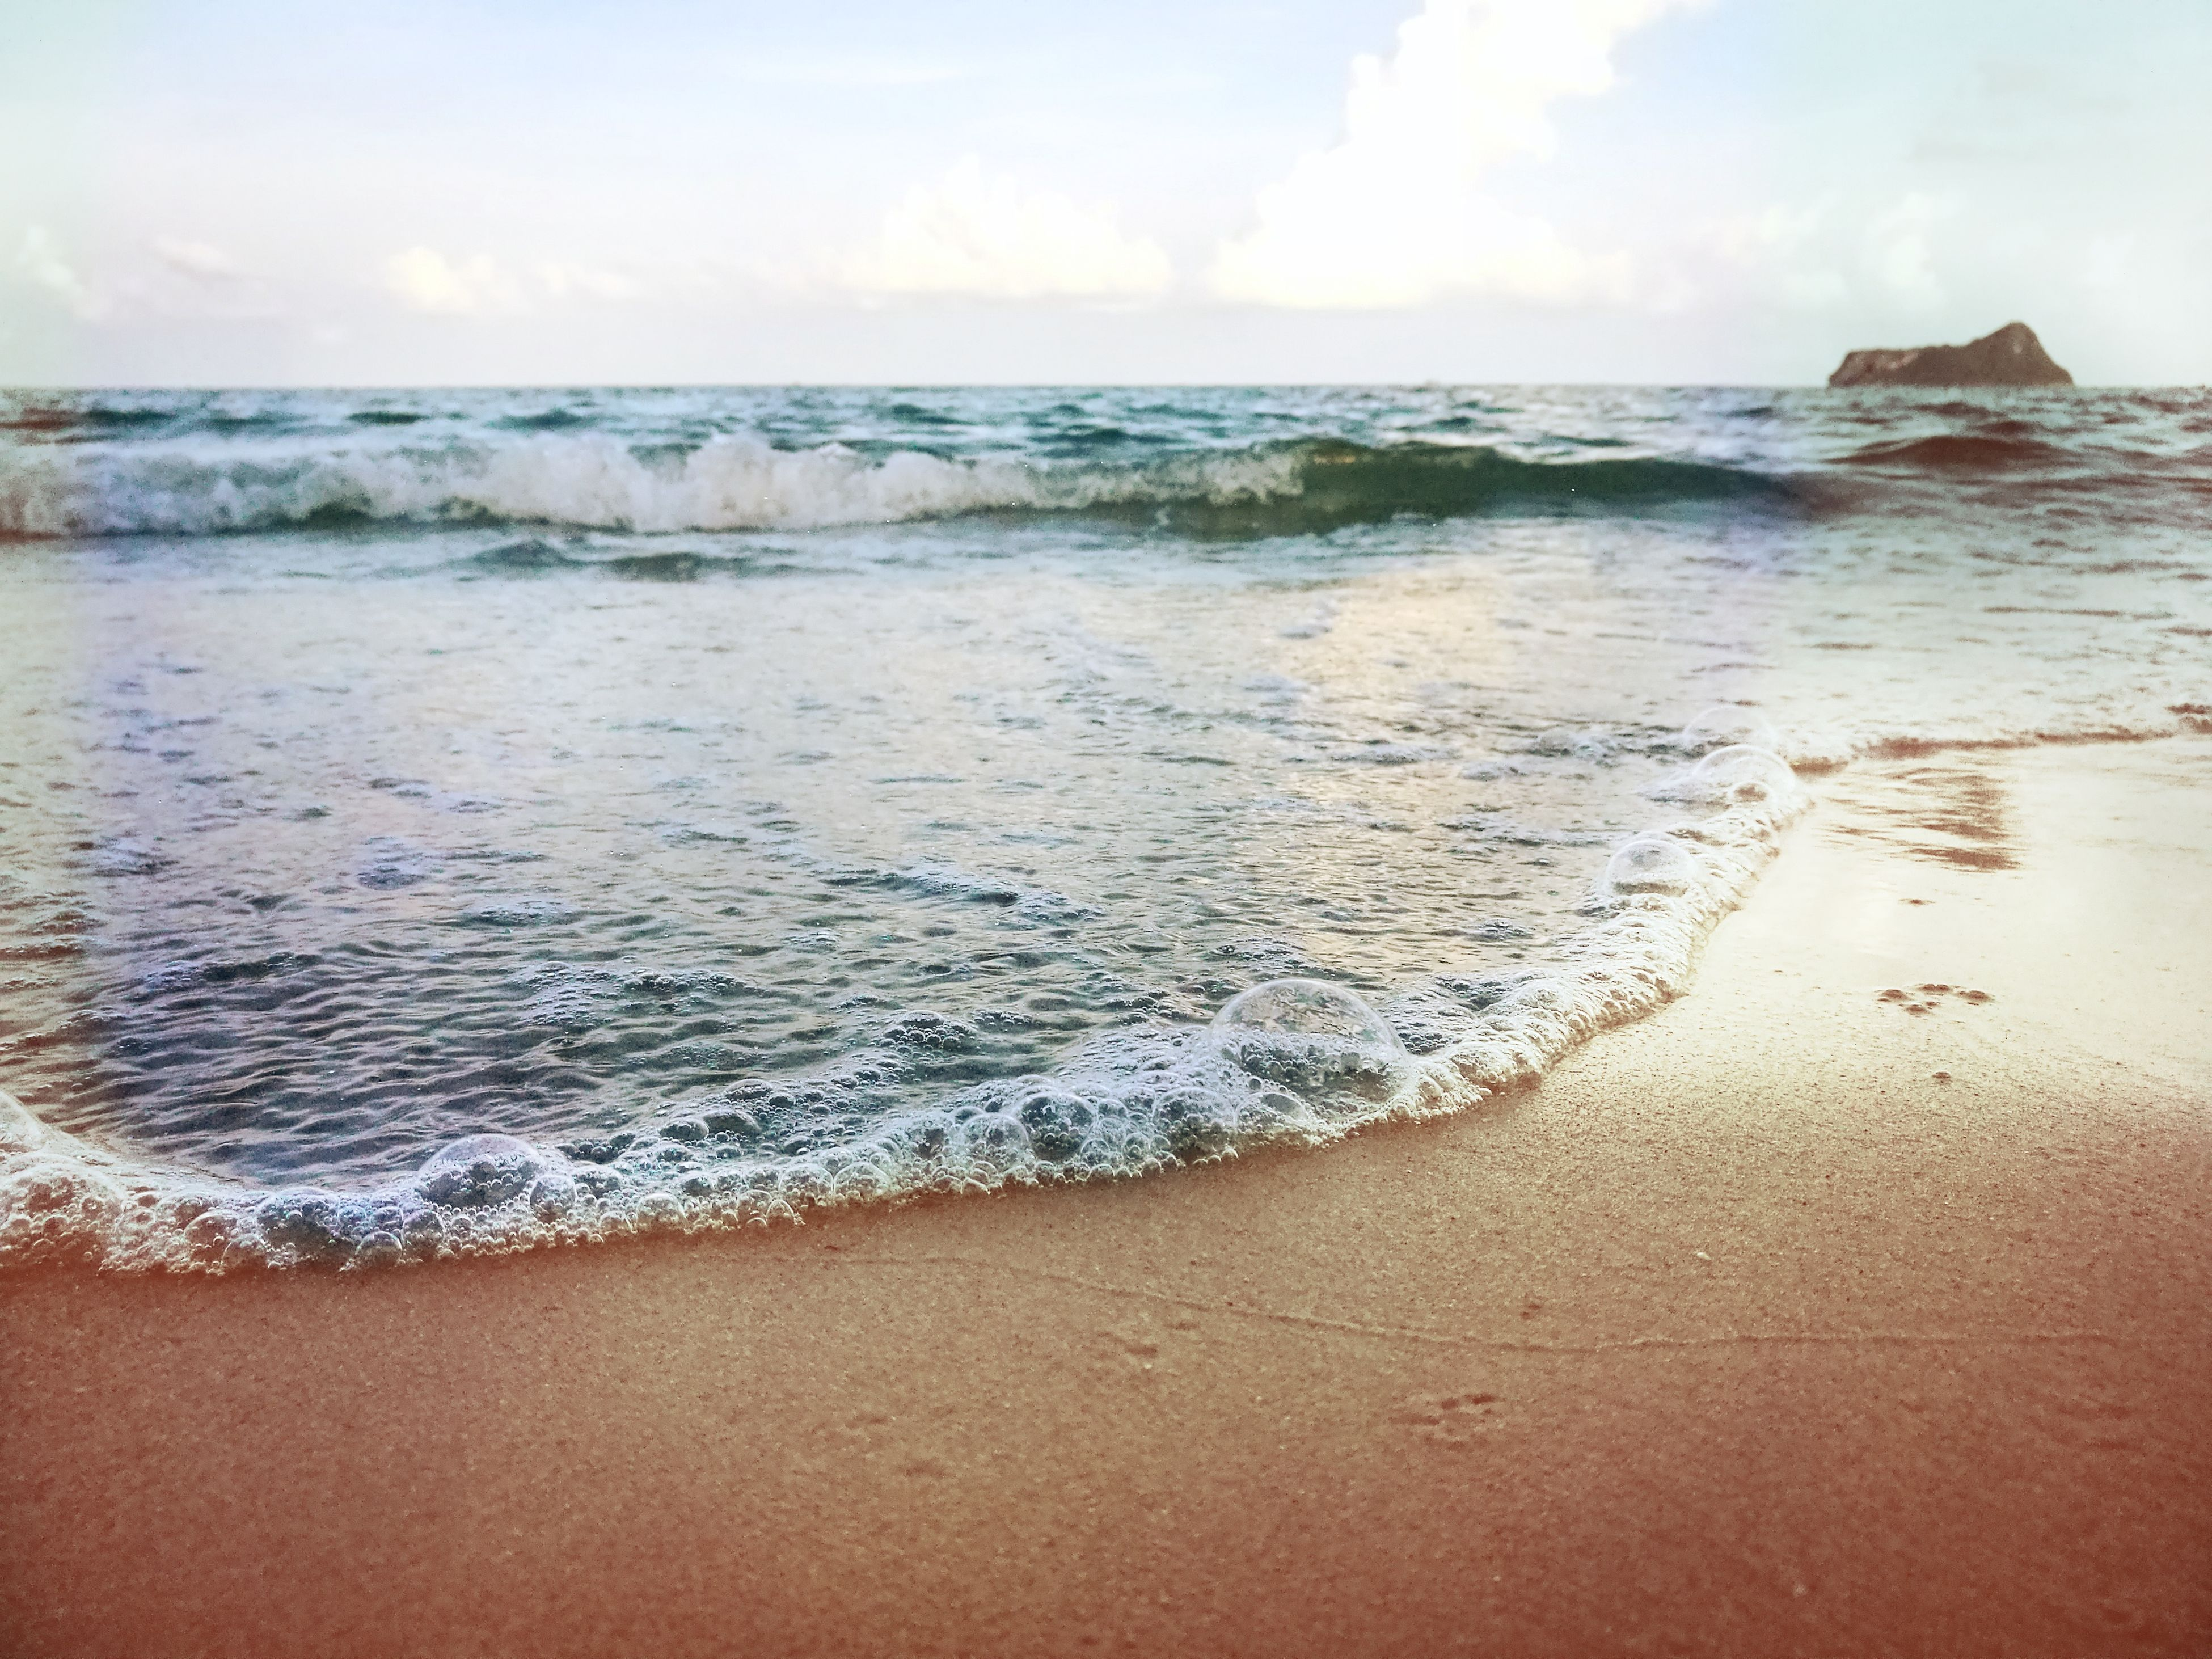 sea, beach, water, nature, horizon over water, sky, scenics, beauty in nature, wave, shore, sand, tranquility, tranquil scene, outdoors, day, no people